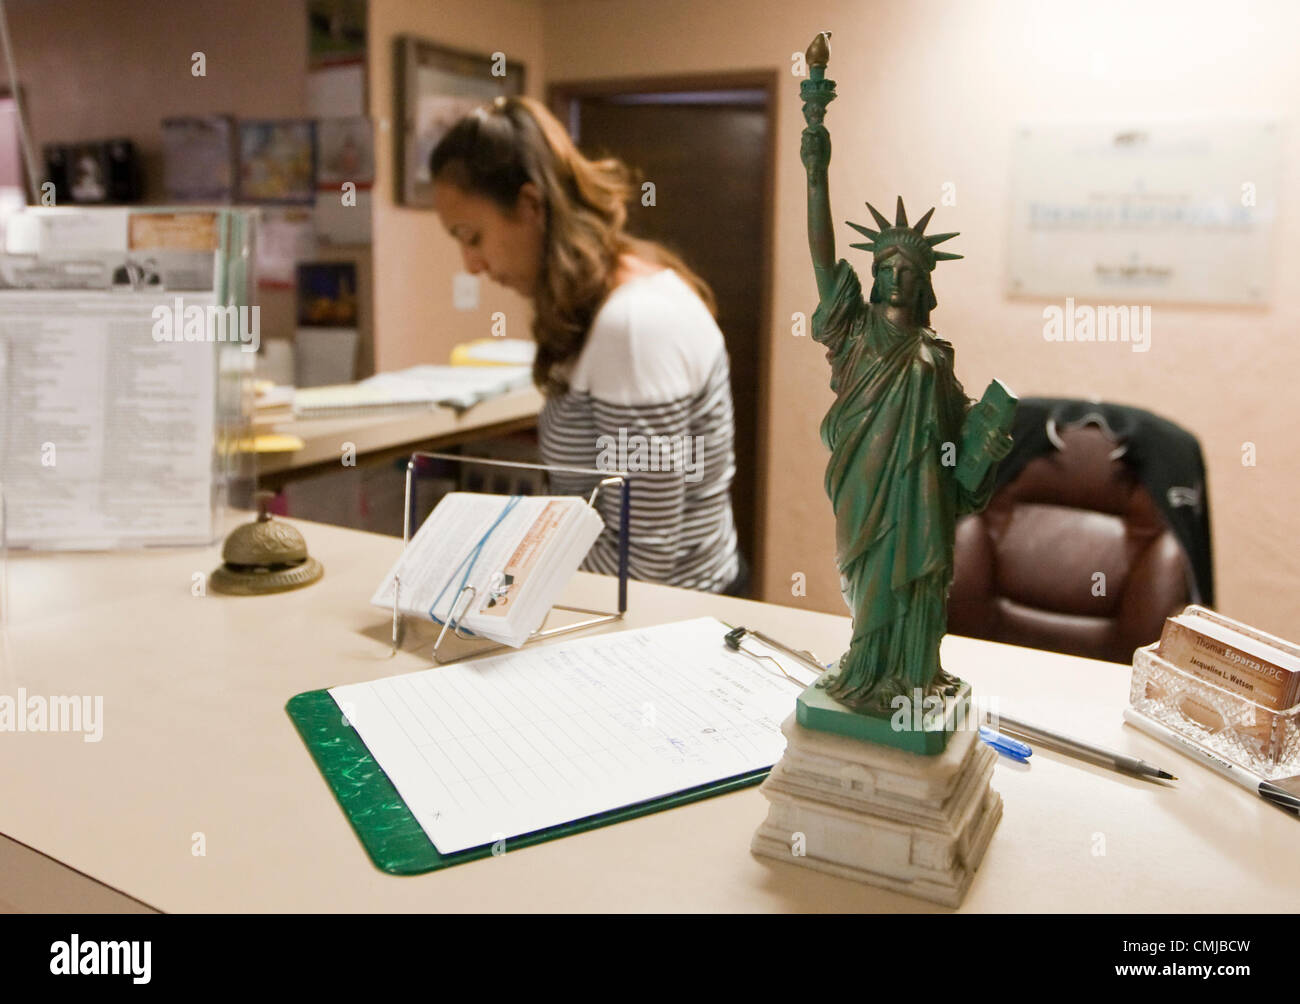 Miniature replica of Statue of Liberty sits on reception desk at immigration attorney's office in Austin, Texas - Stock Image